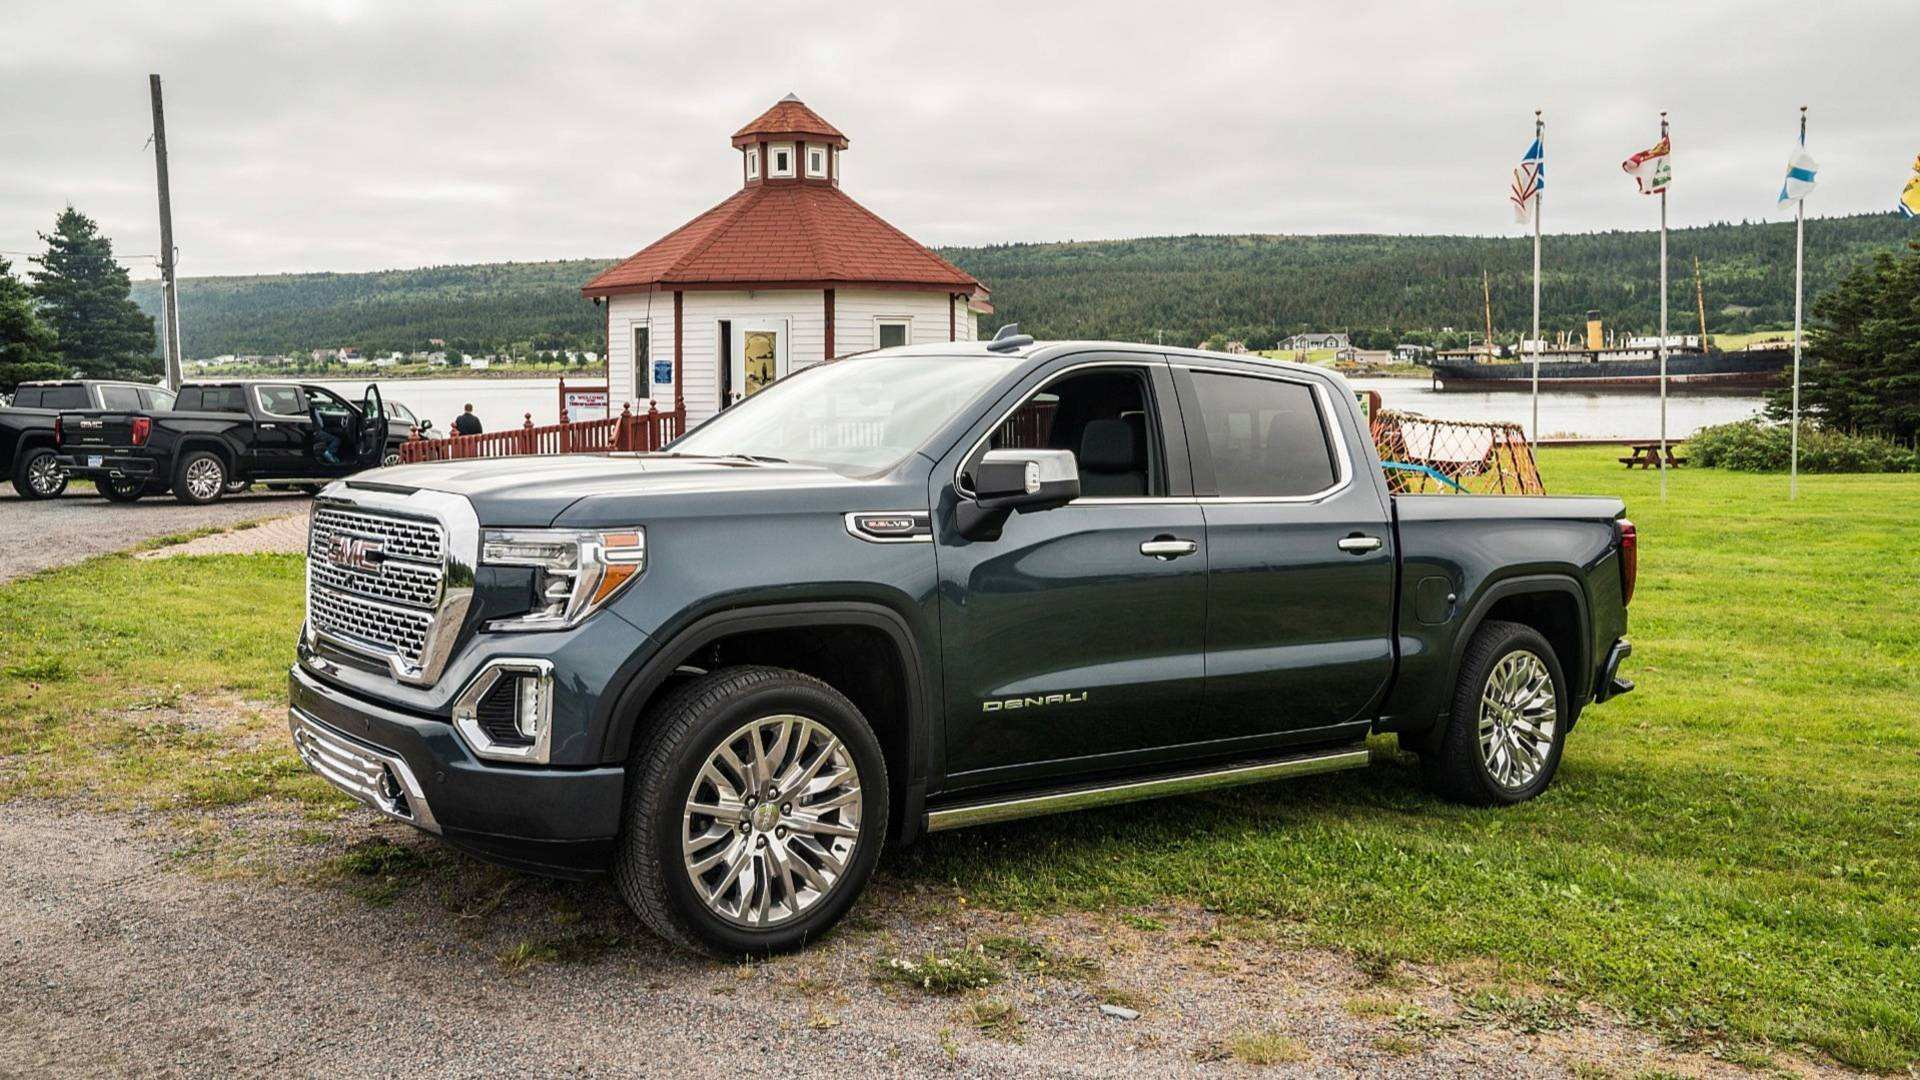 81 New The 2019 Chevrolet Half Ton Diesel First Drive Configurations by The 2019 Chevrolet Half Ton Diesel First Drive